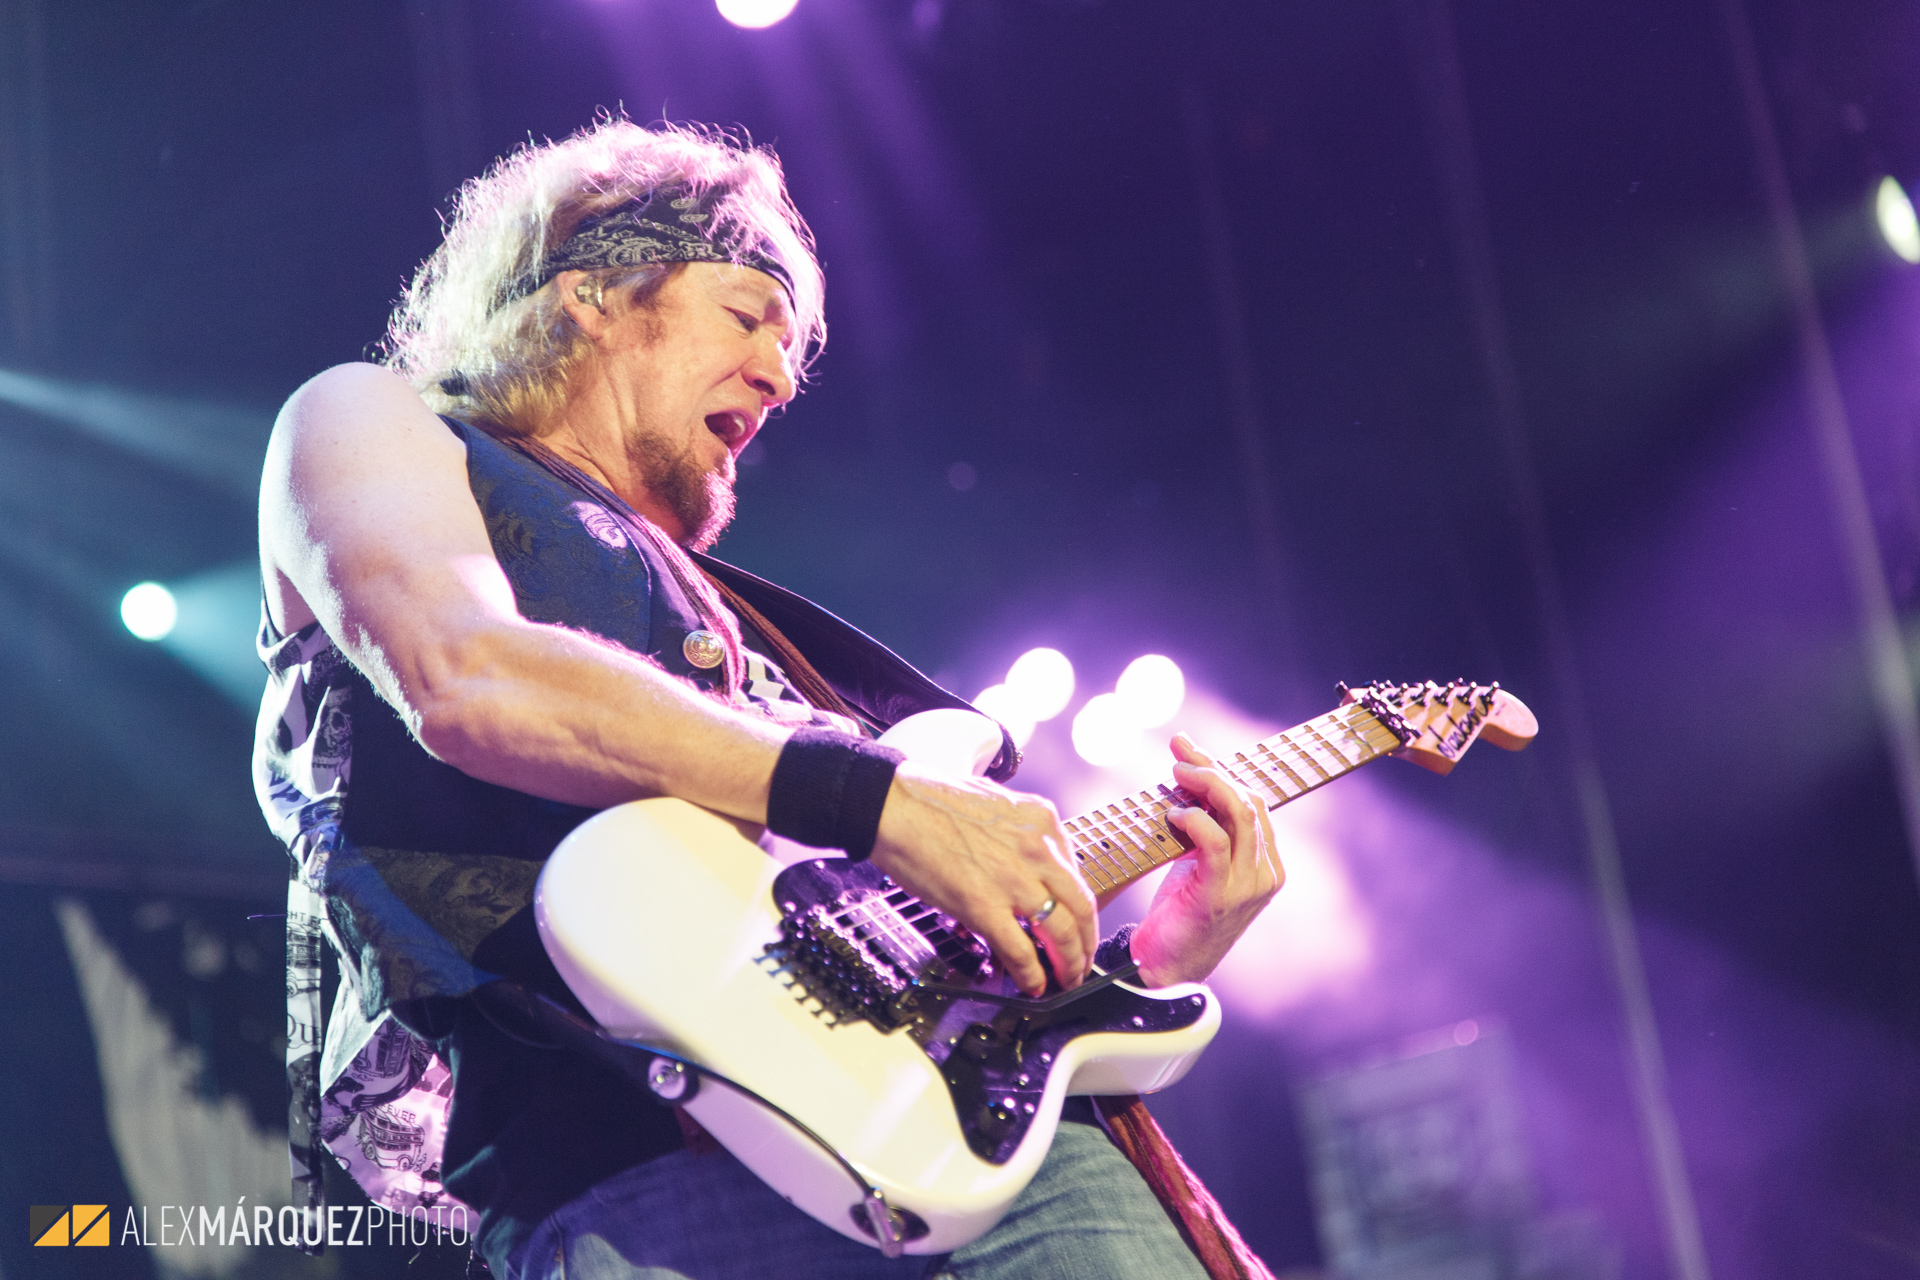 Iron Maiden - Alex Márquez Photo